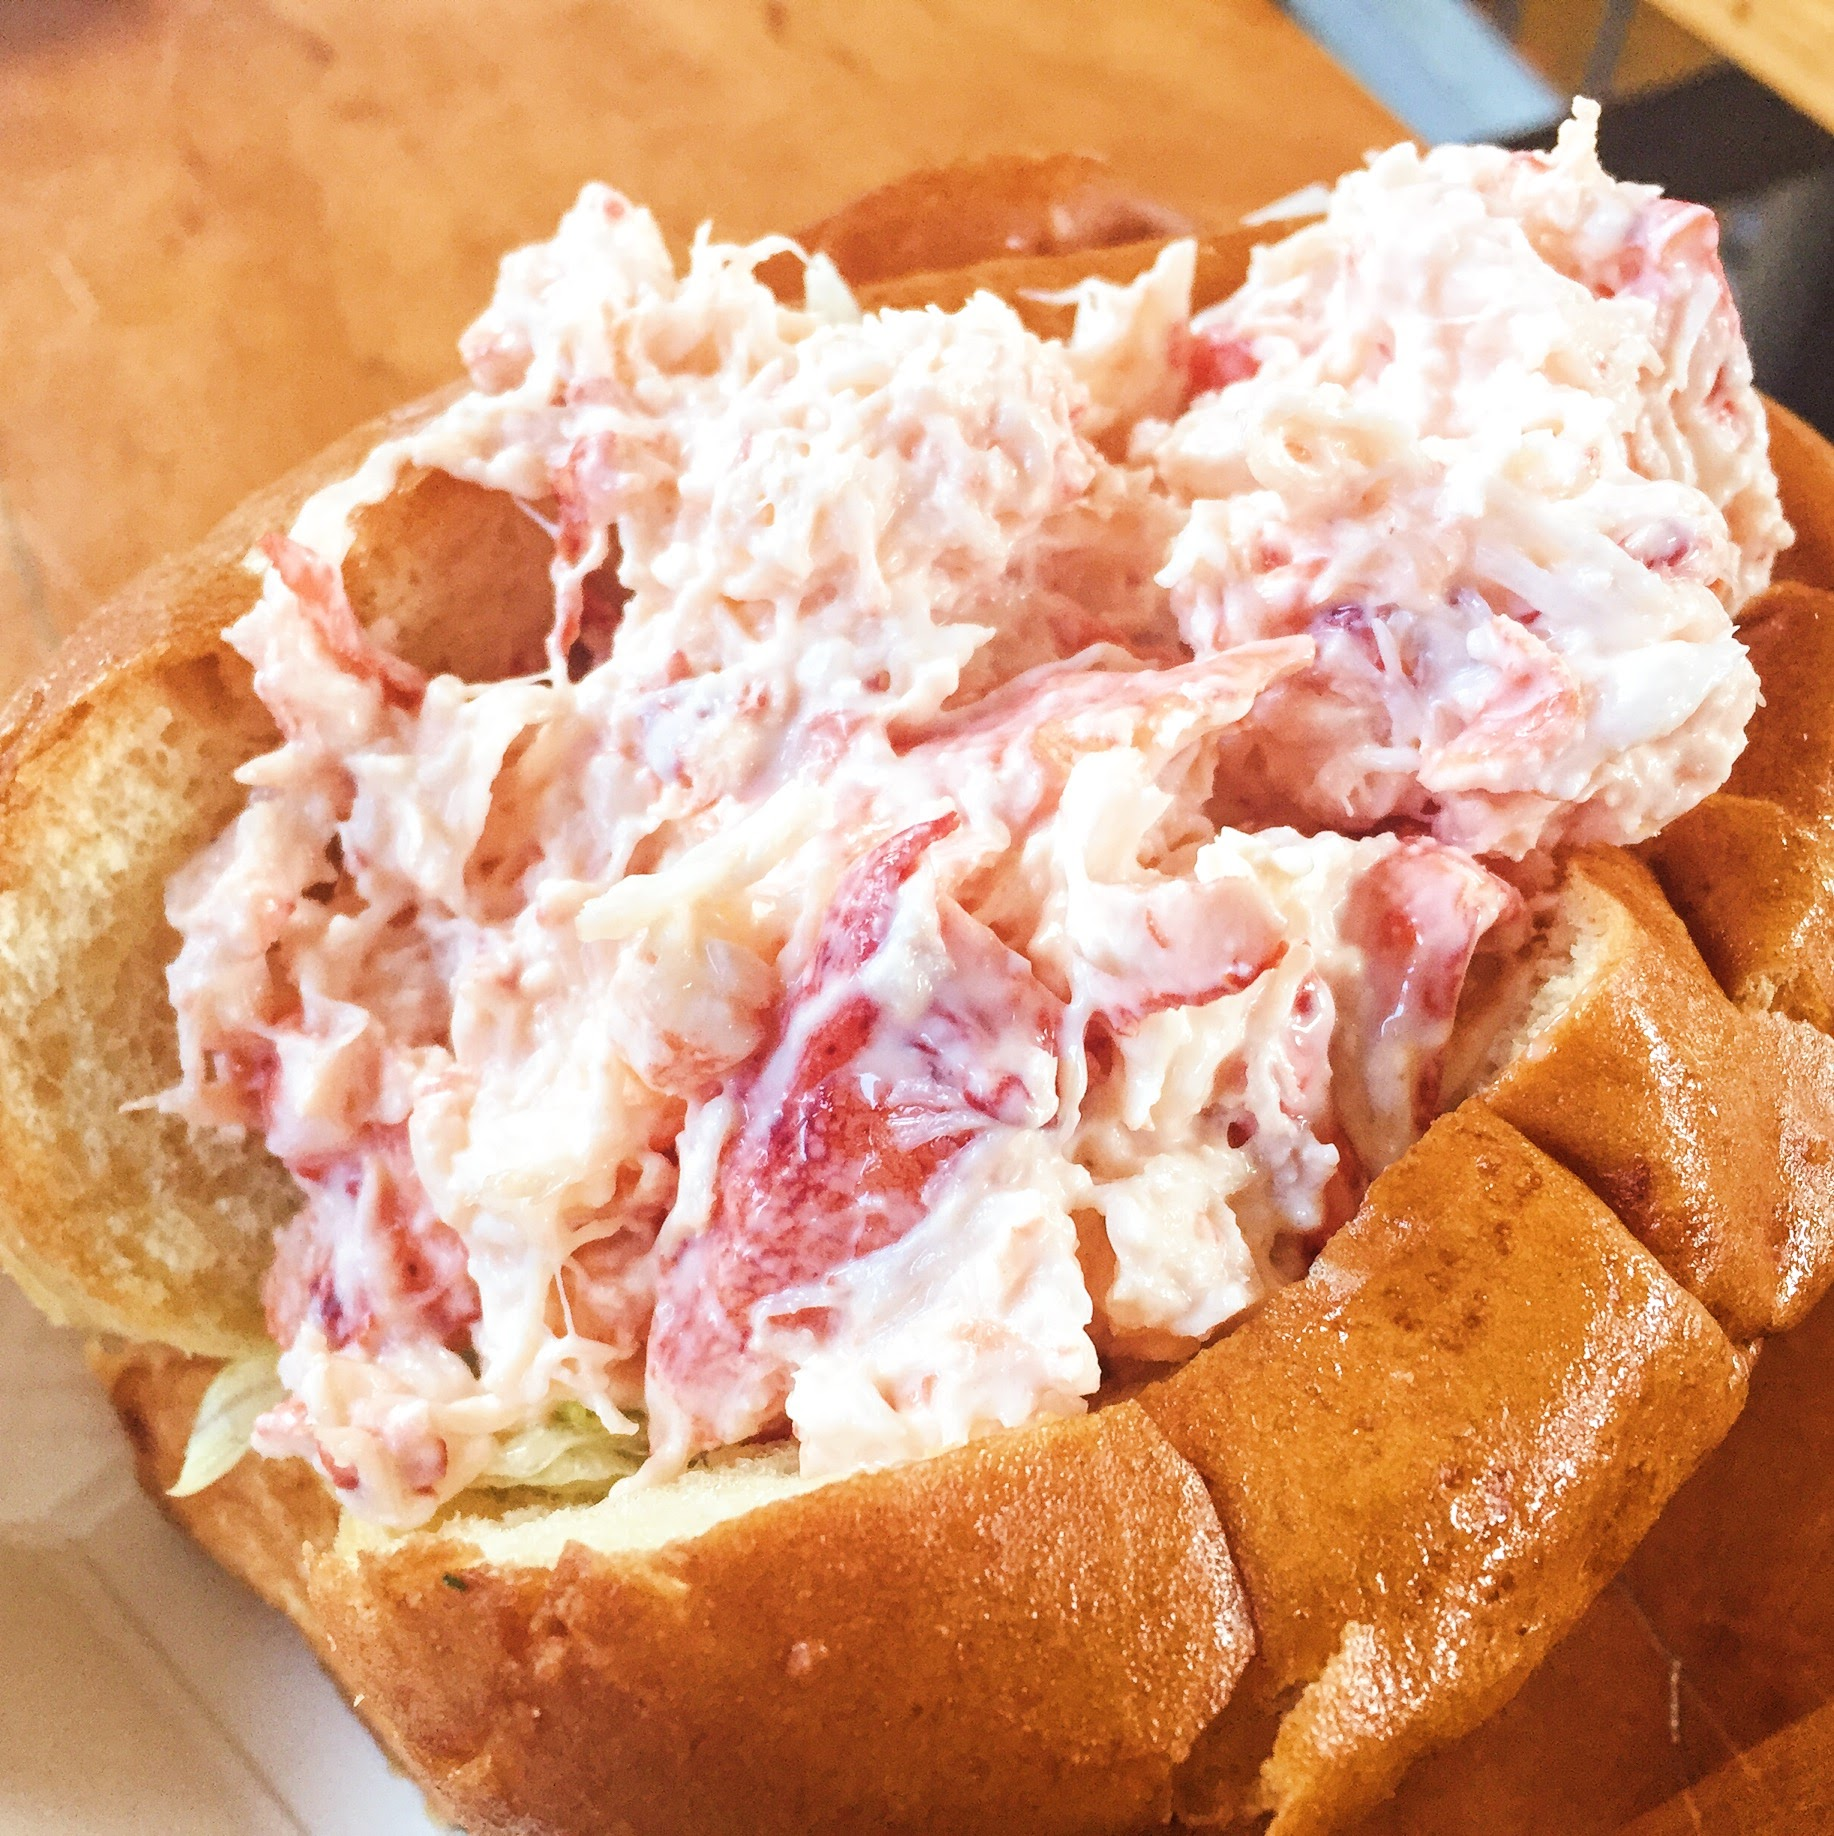 Lobstah- Cold style with Mayo at Quincy Market